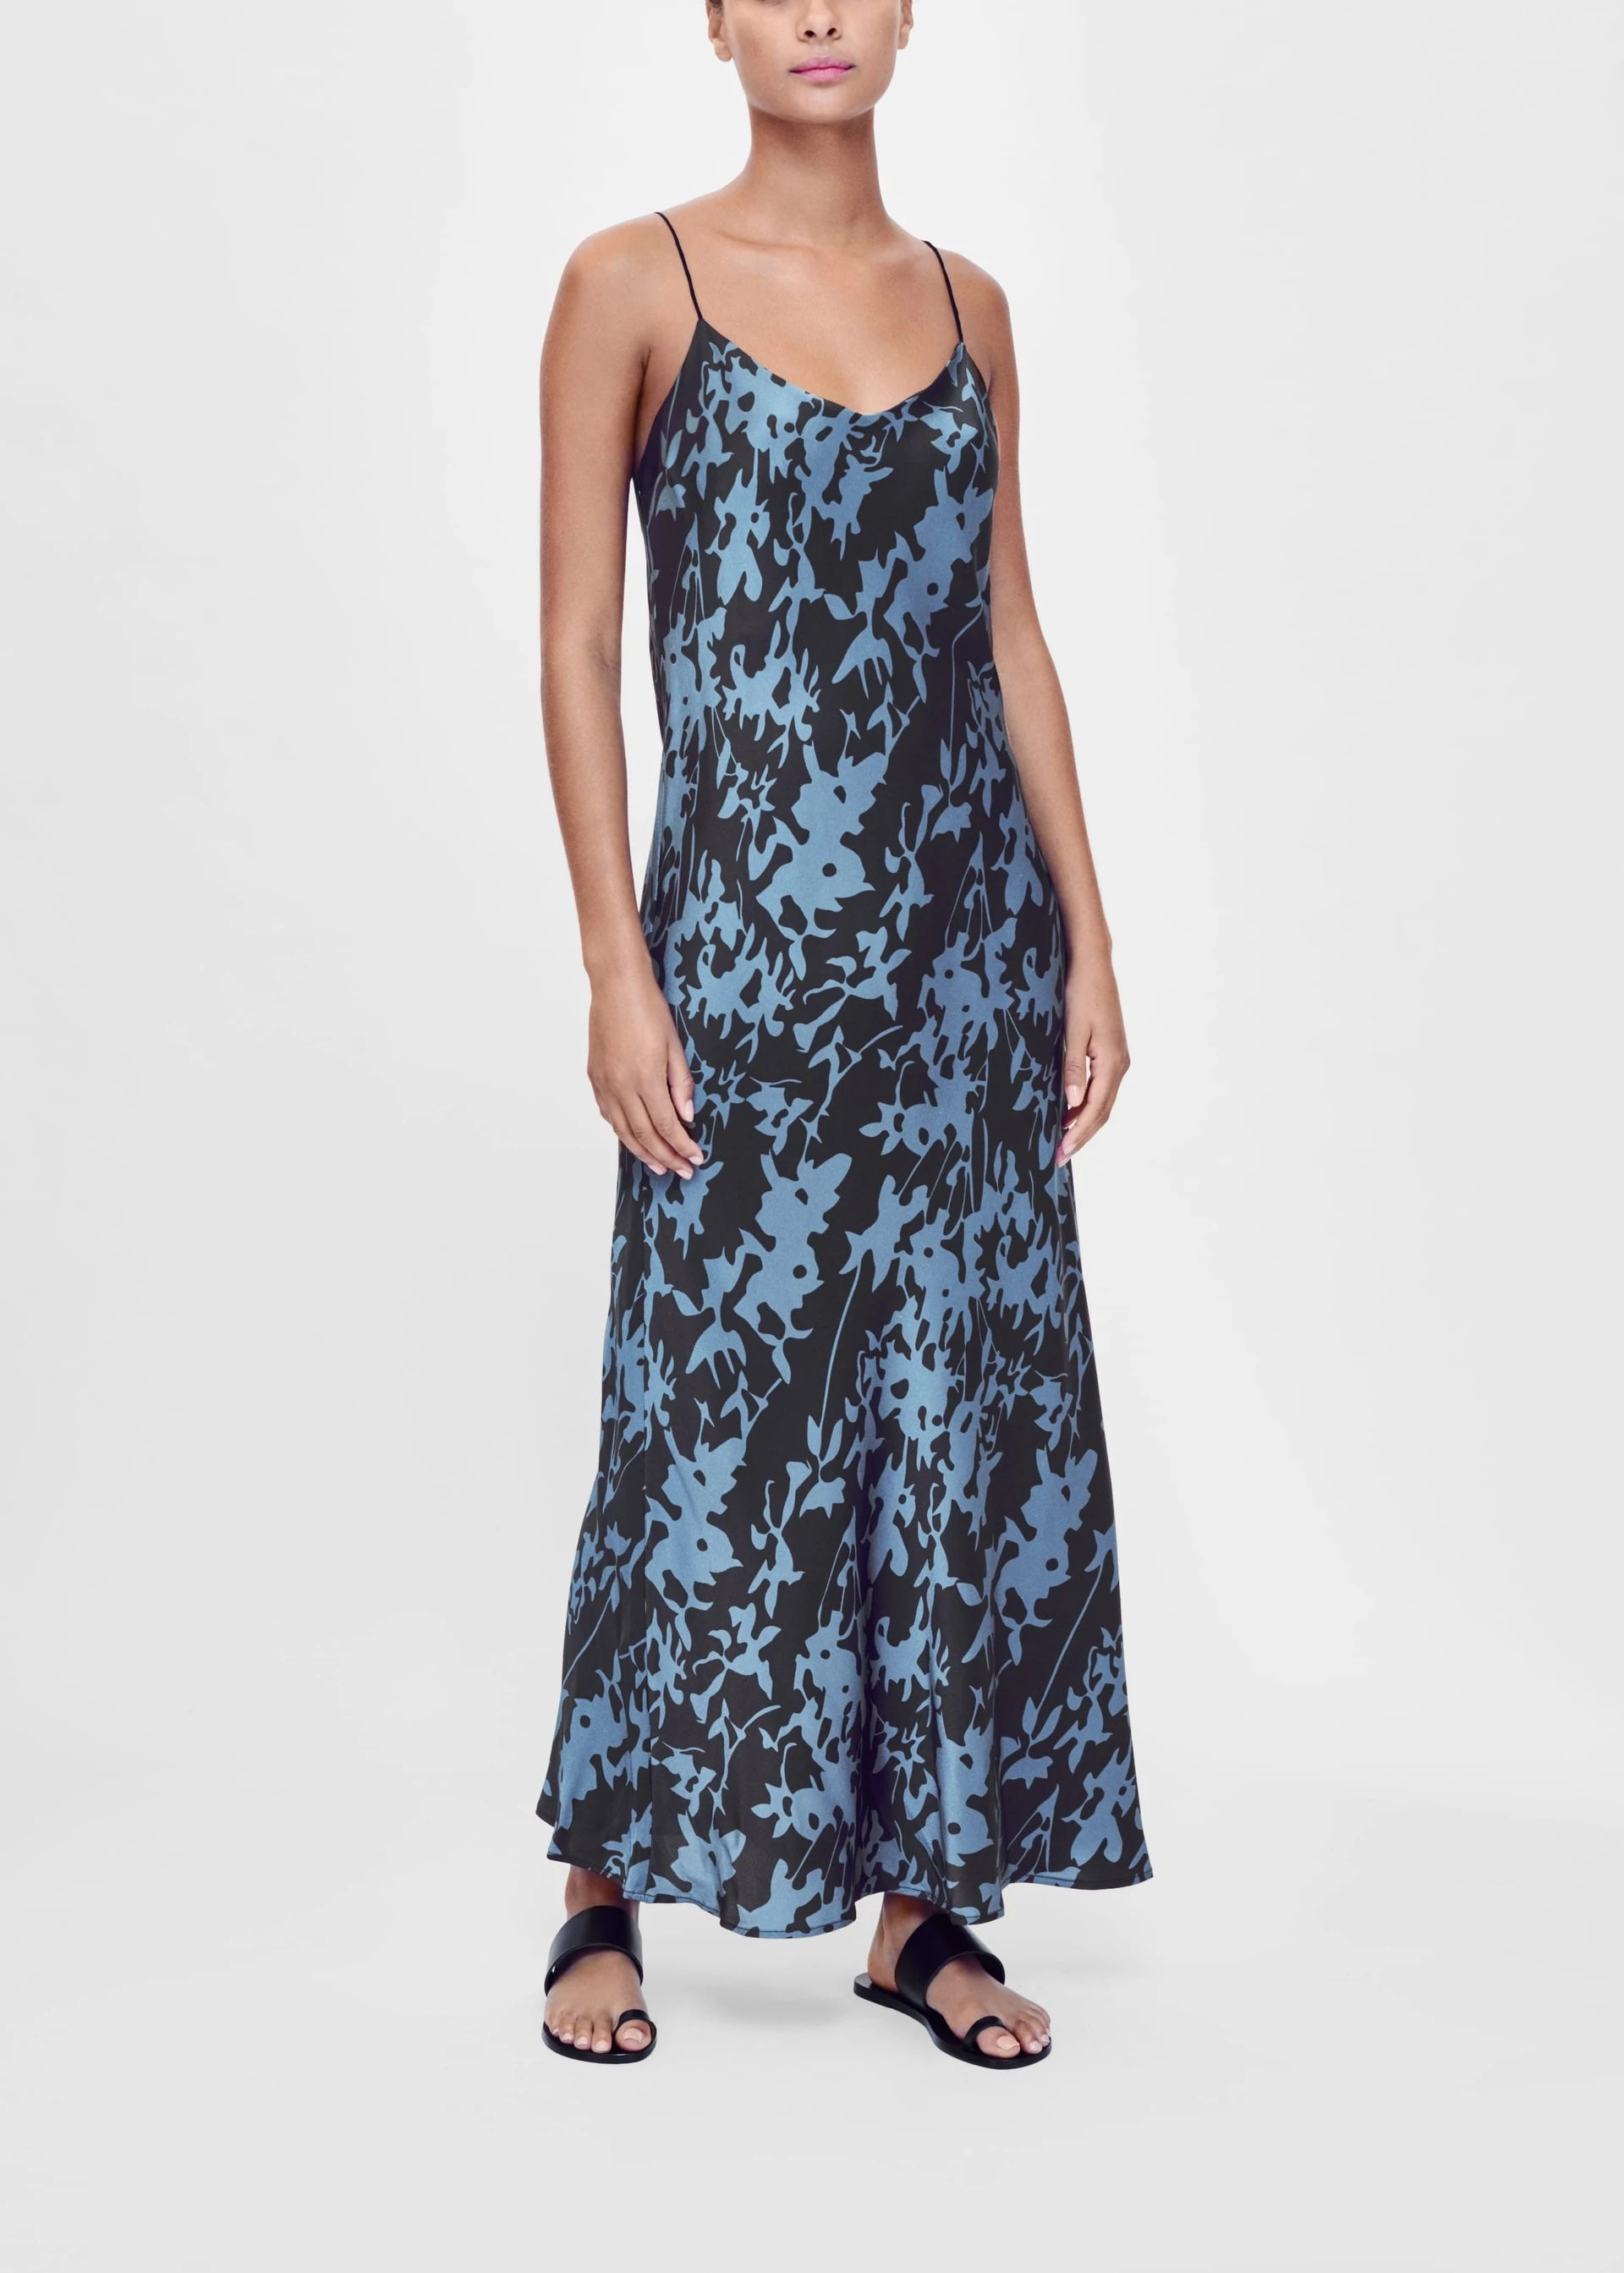 ASCENO LYON BLACK PRINTED SILK SLIP DRESS